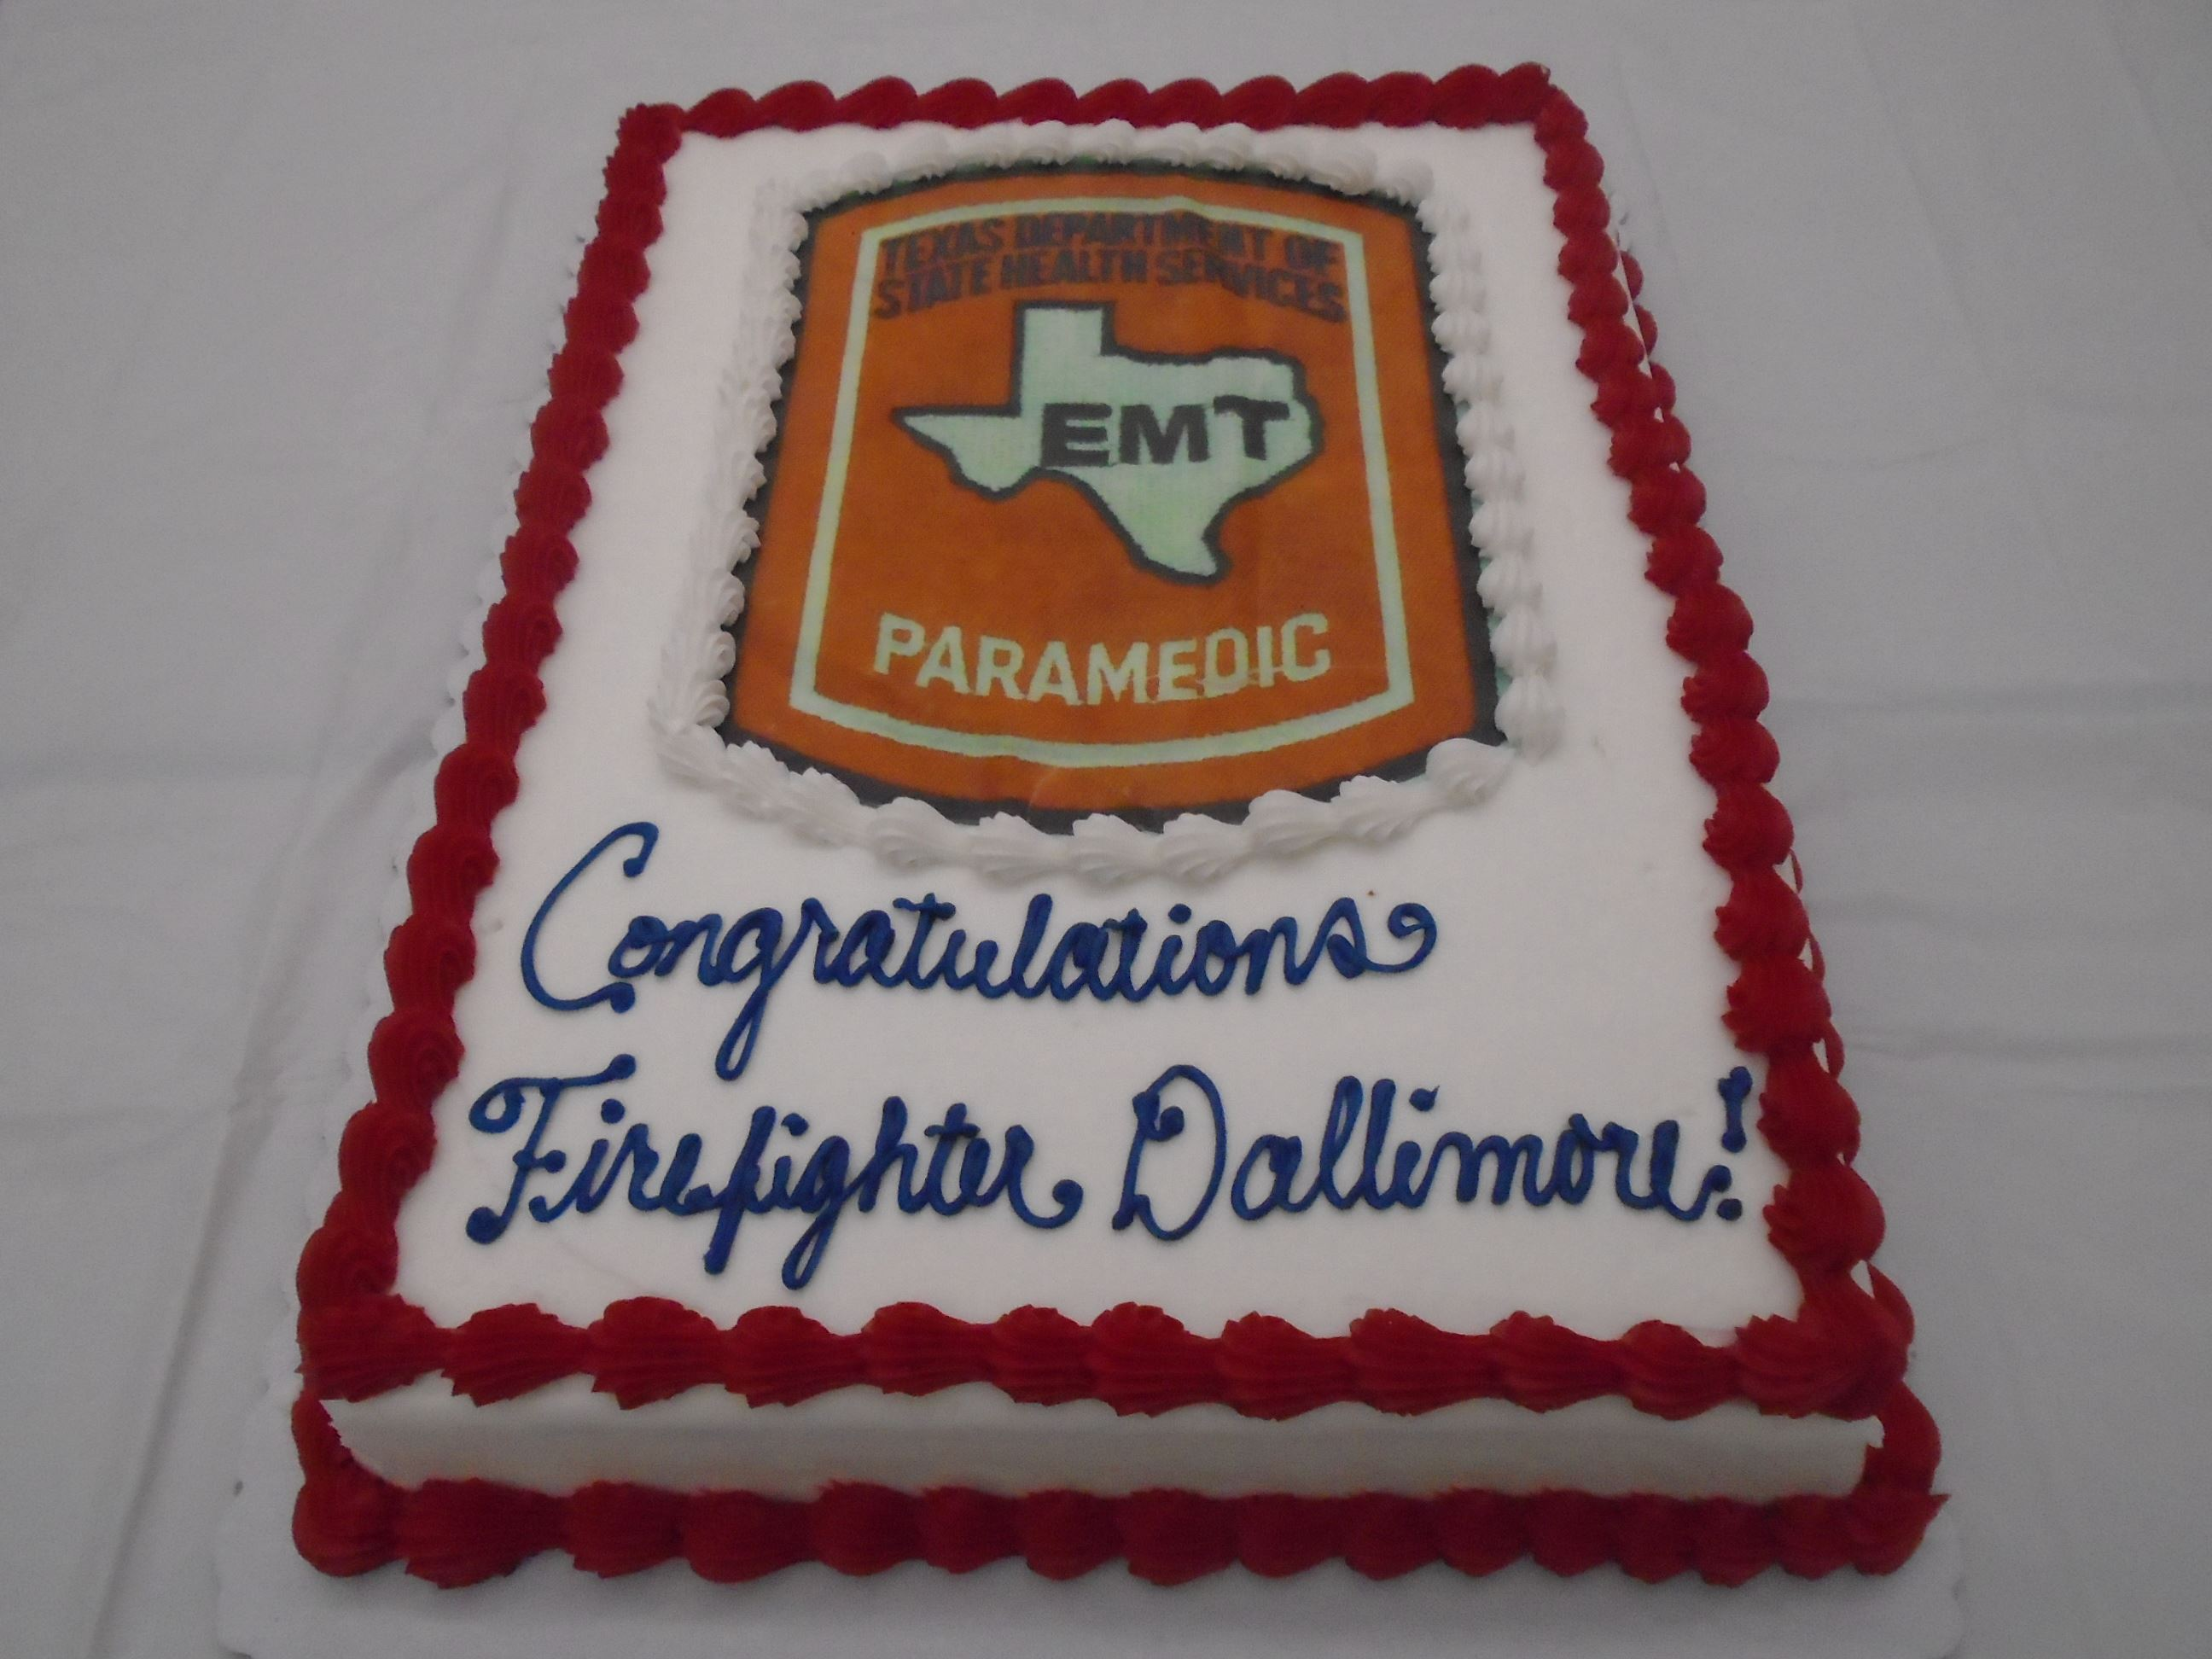 City of san marcos tx custom cake ordered to celebrate firefighters paramedic certification 1betcityfo Images